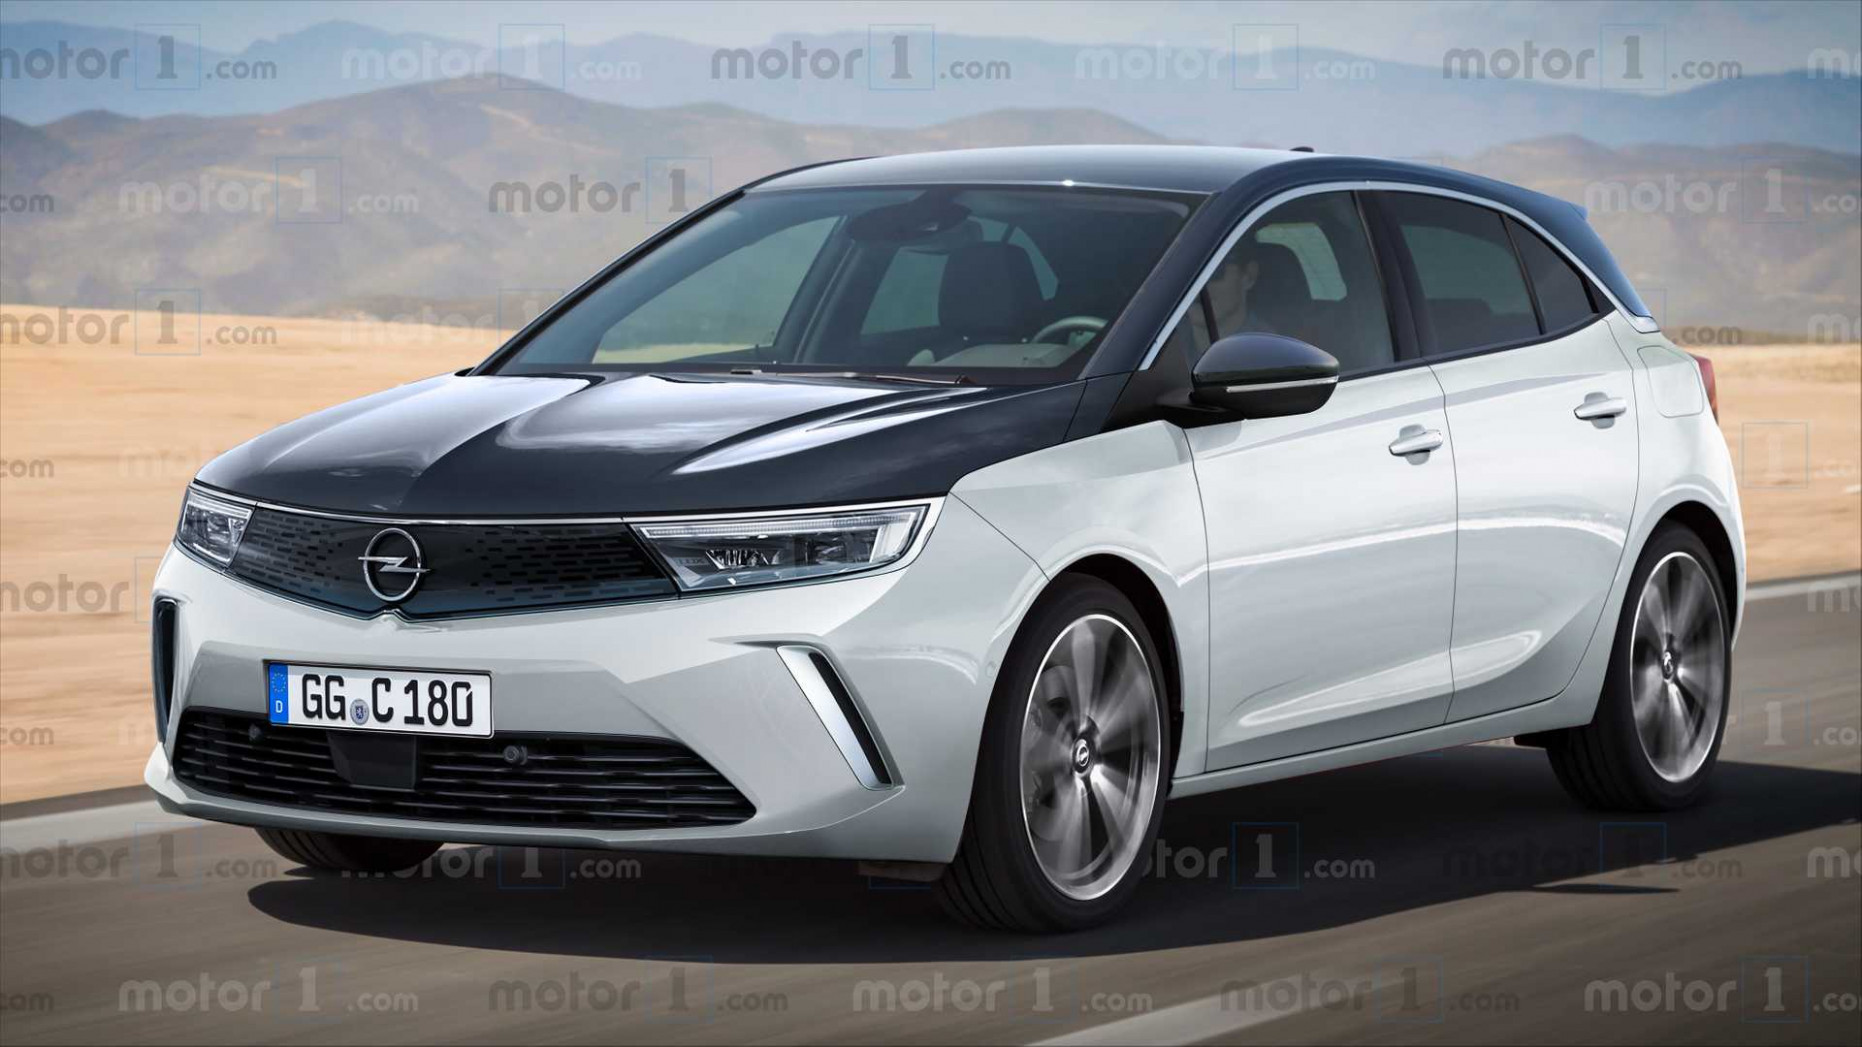 Exterior and Interior 2022 New Opel Astra